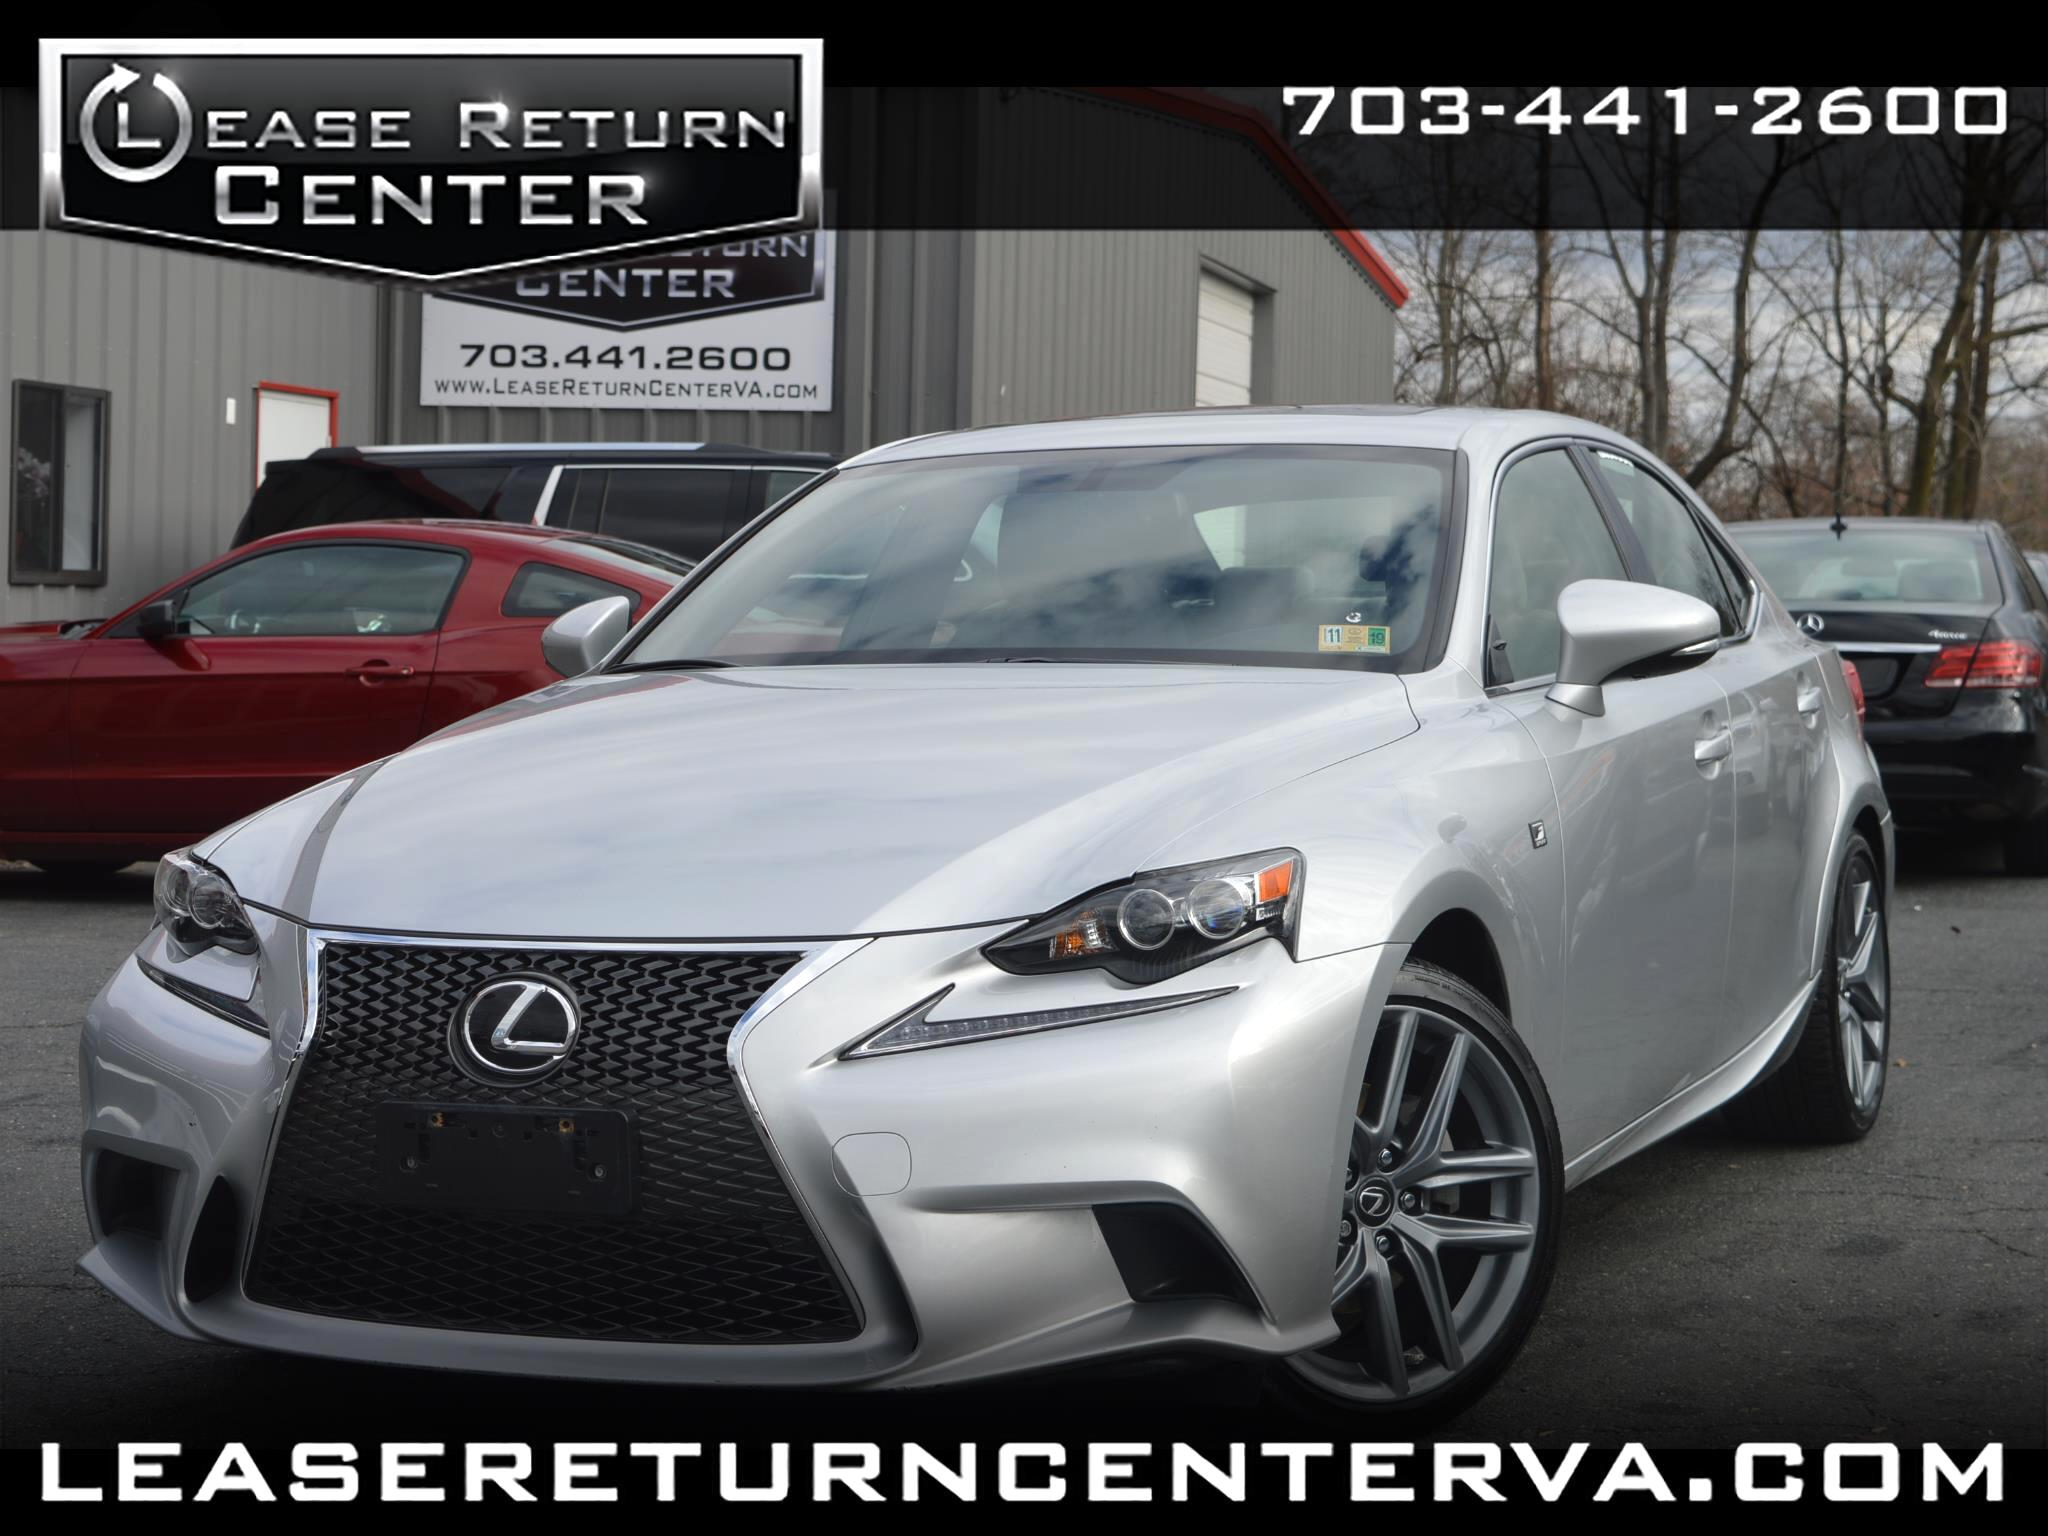 2015 Lexus IS 250 Fsport AWD